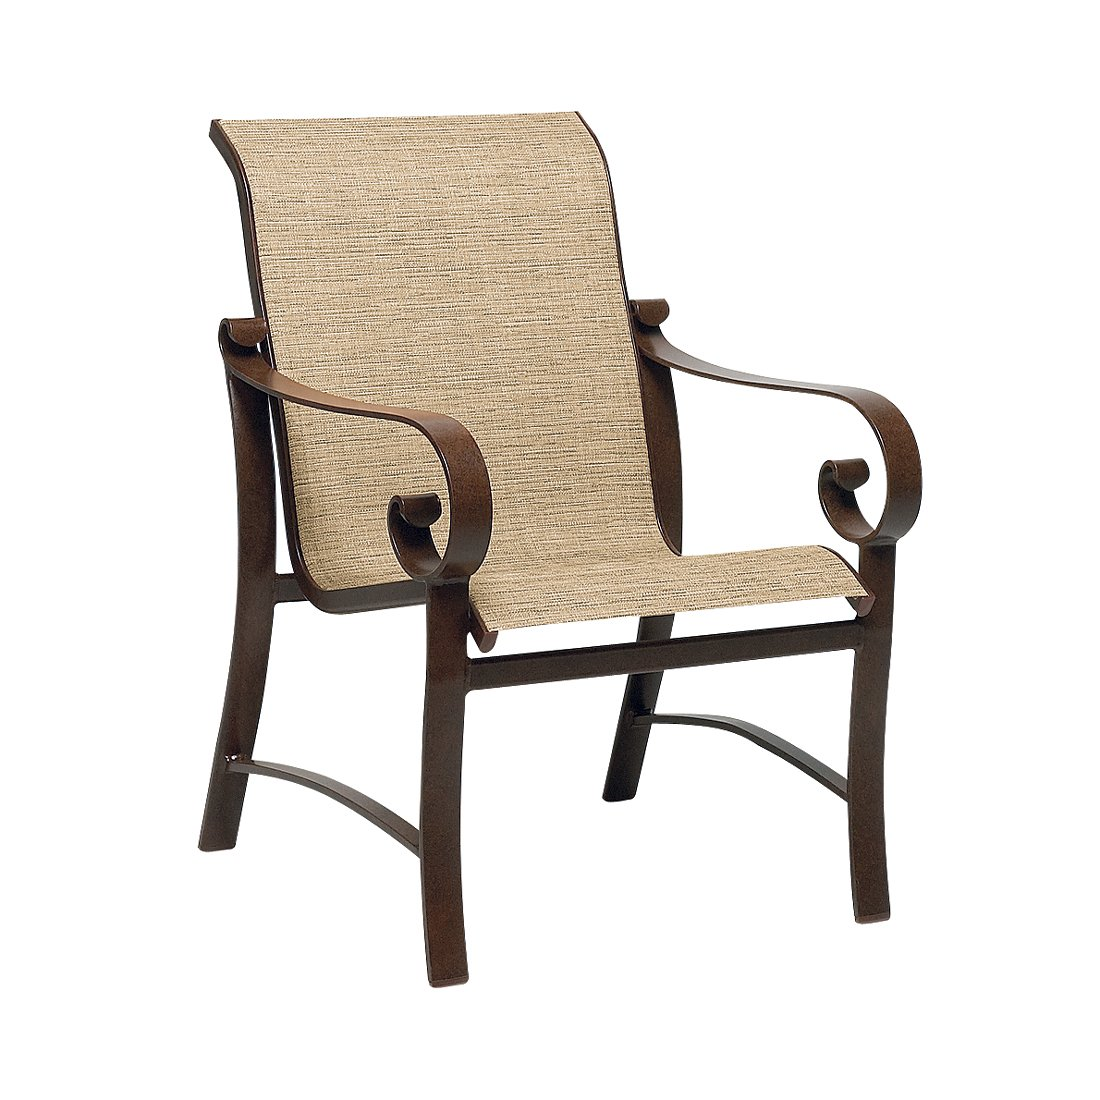 Image of: Design of Patio Sling Chairs